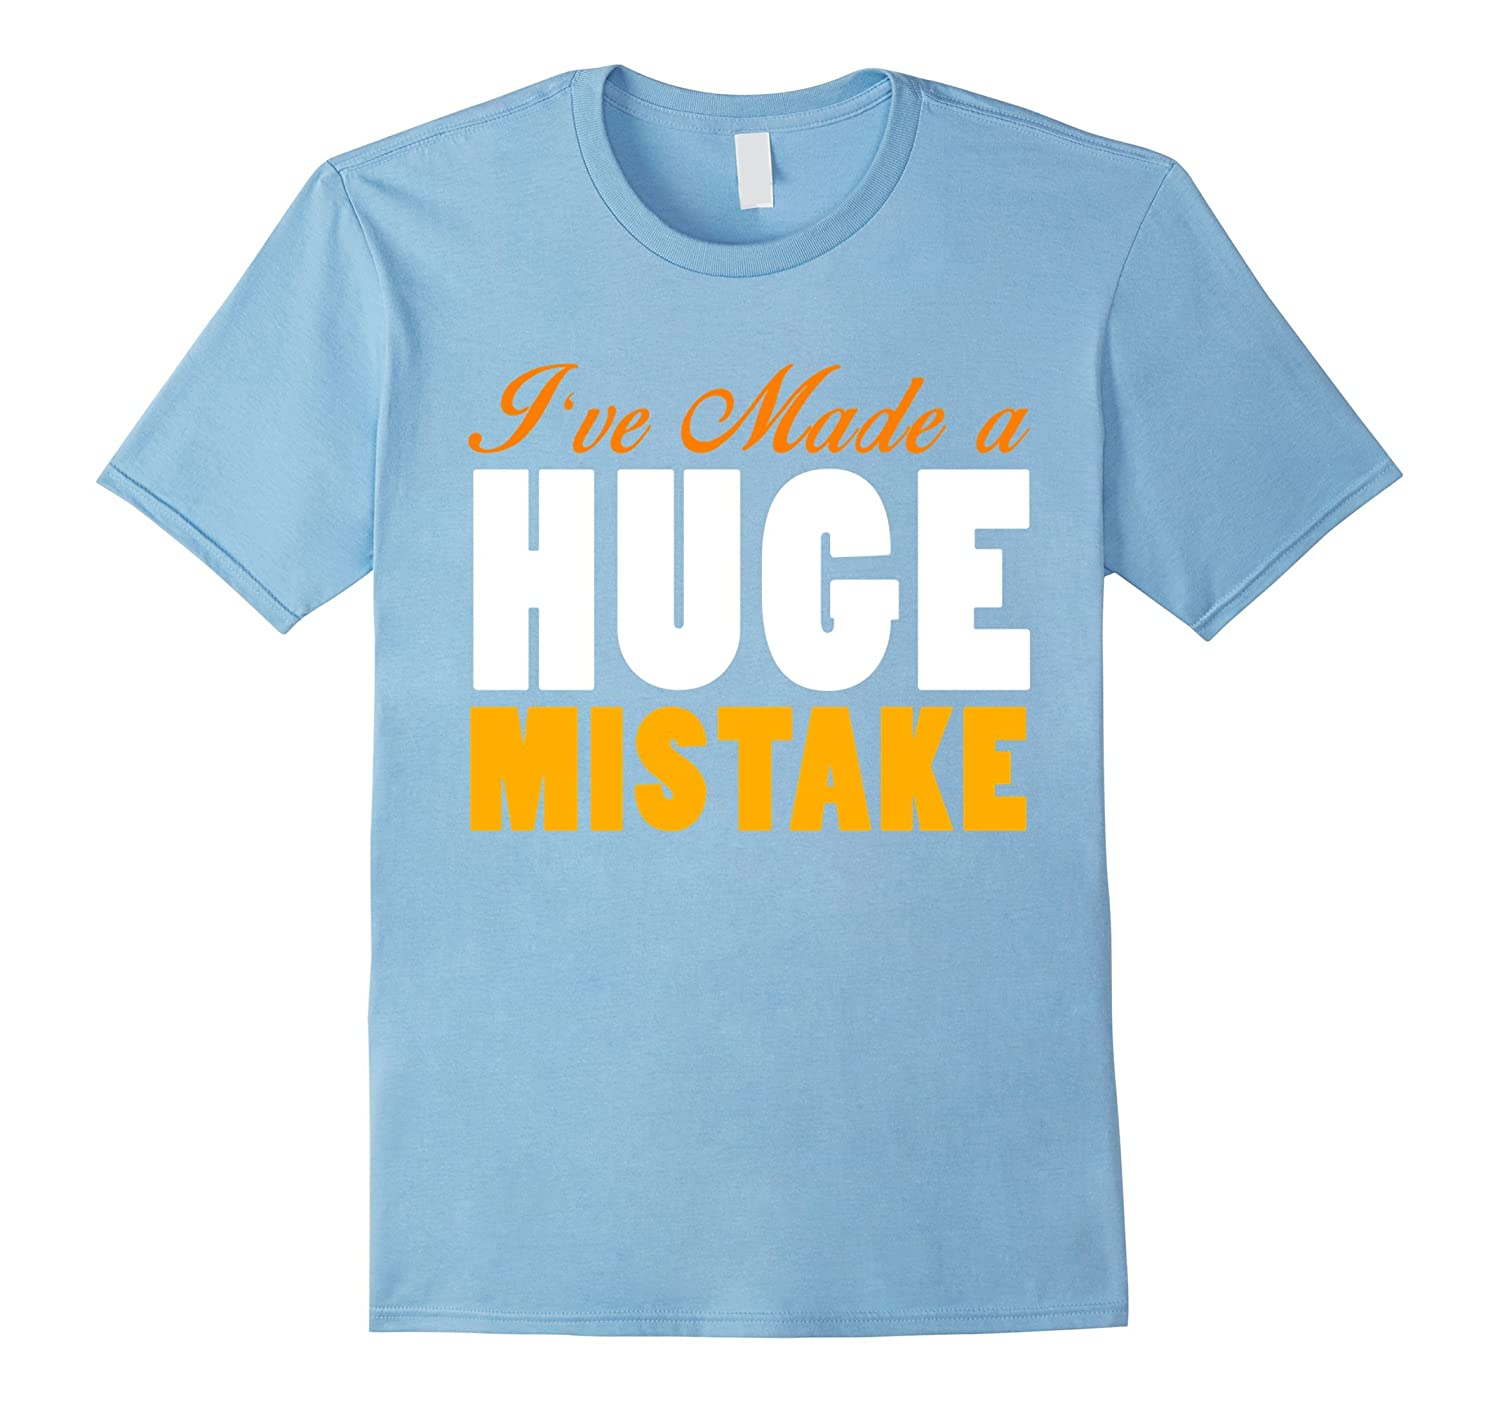 Official ive made a huge mistake funny t-shirt-TH